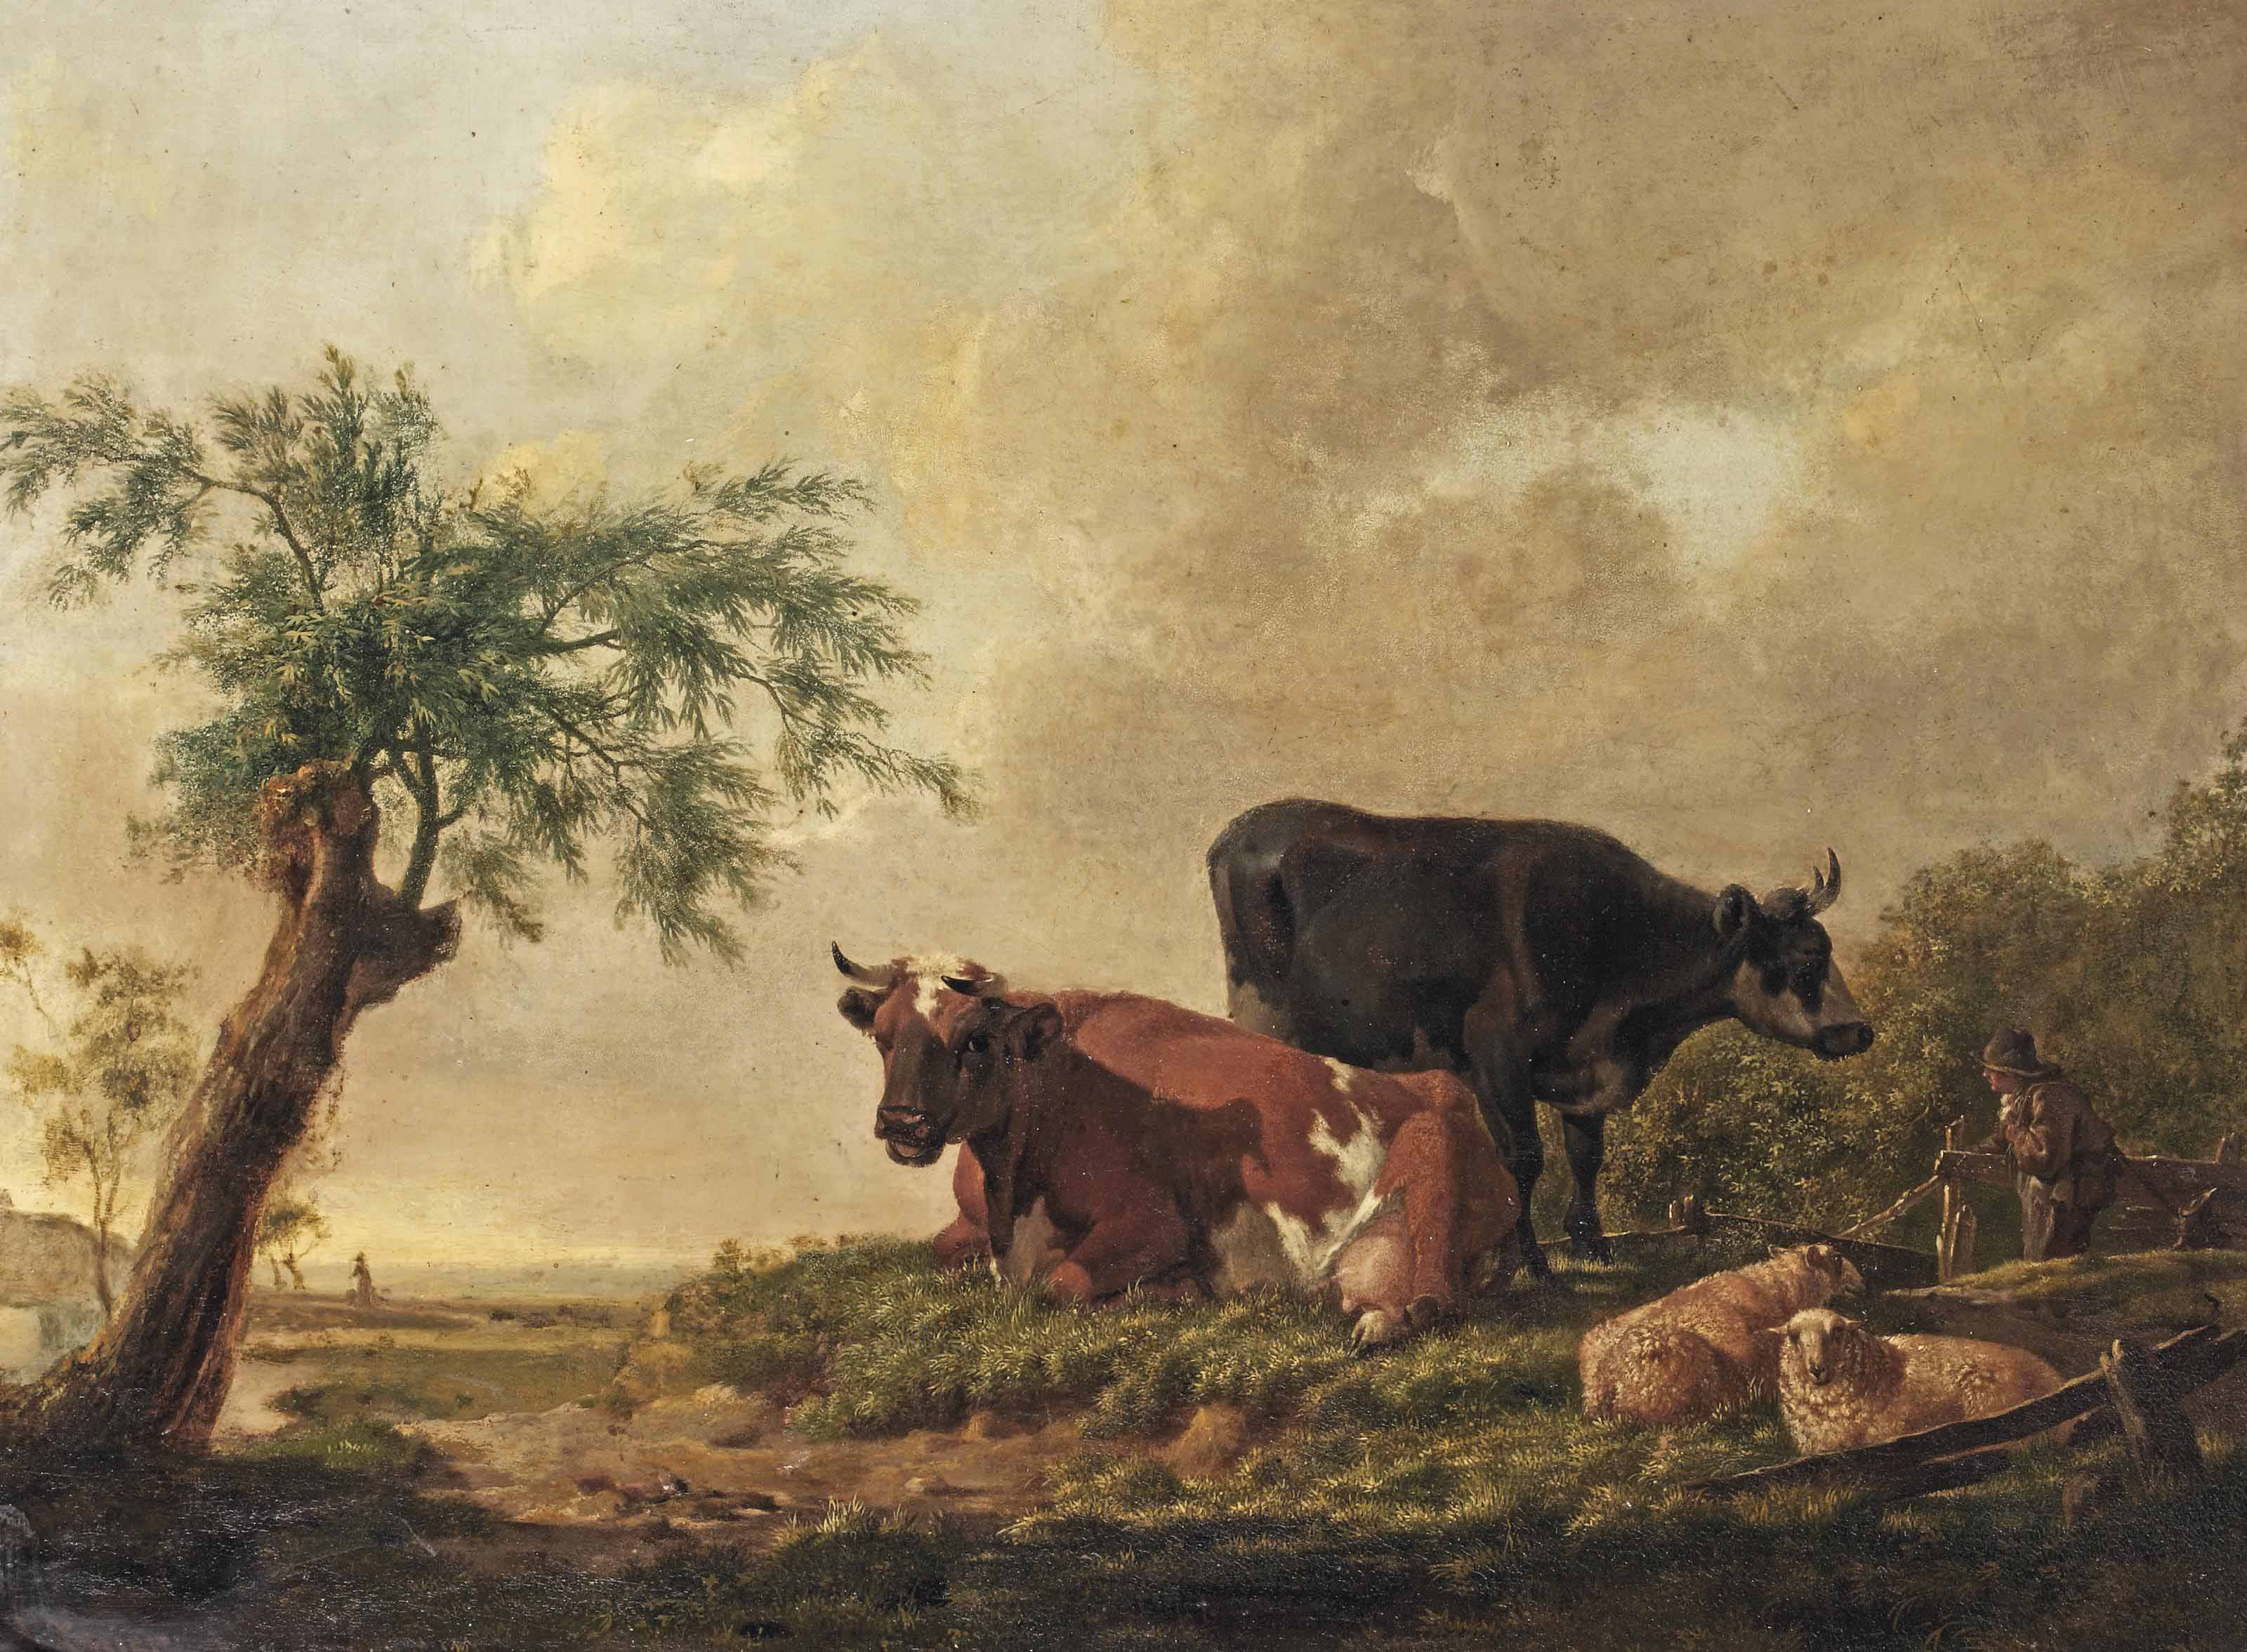 A pastoral landscape with a farmer and his cattle resting